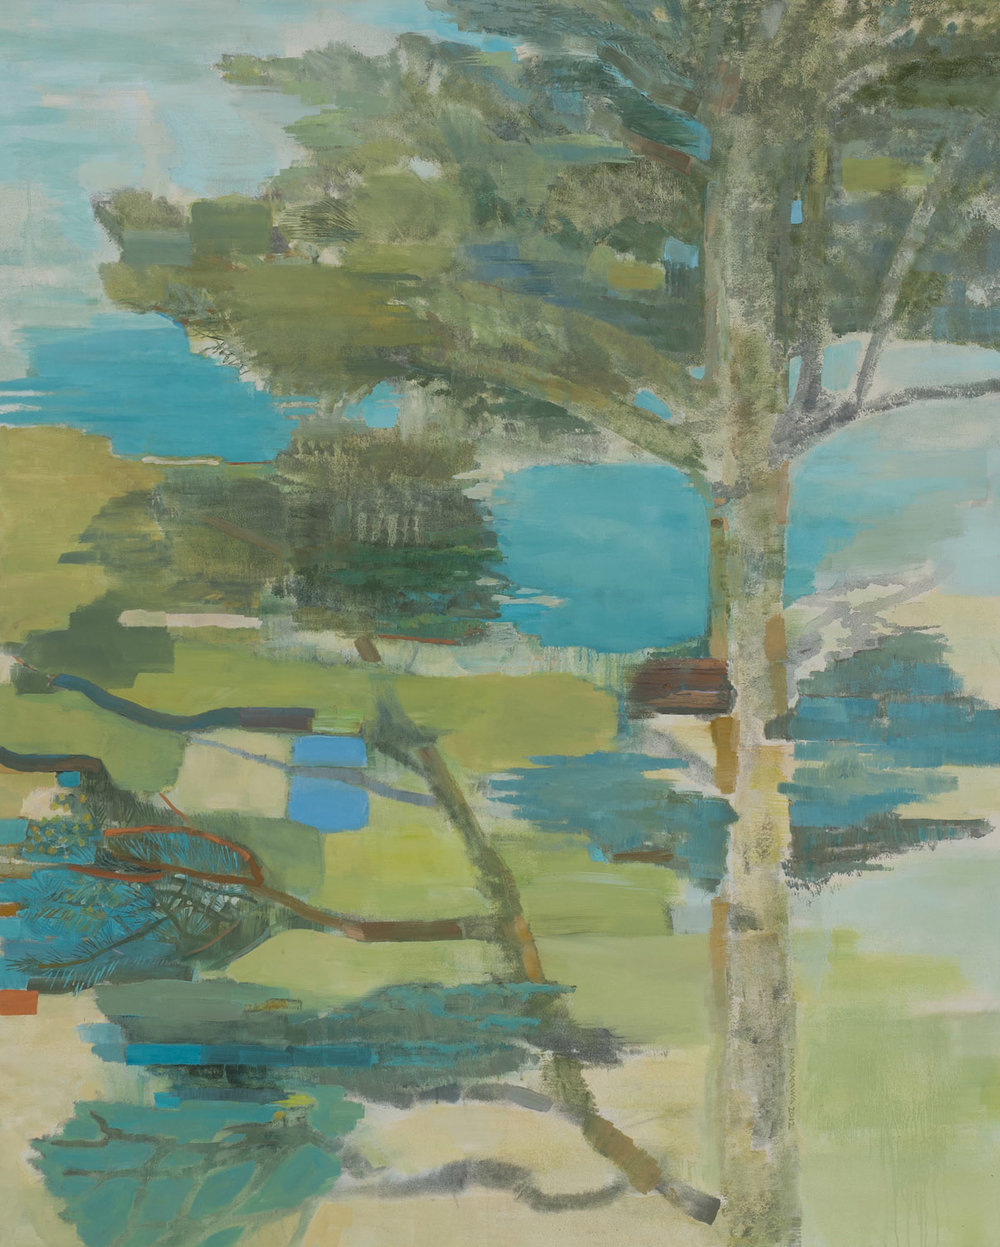 MONTARA • oil on canvas • 72 by 58 inches • 2011